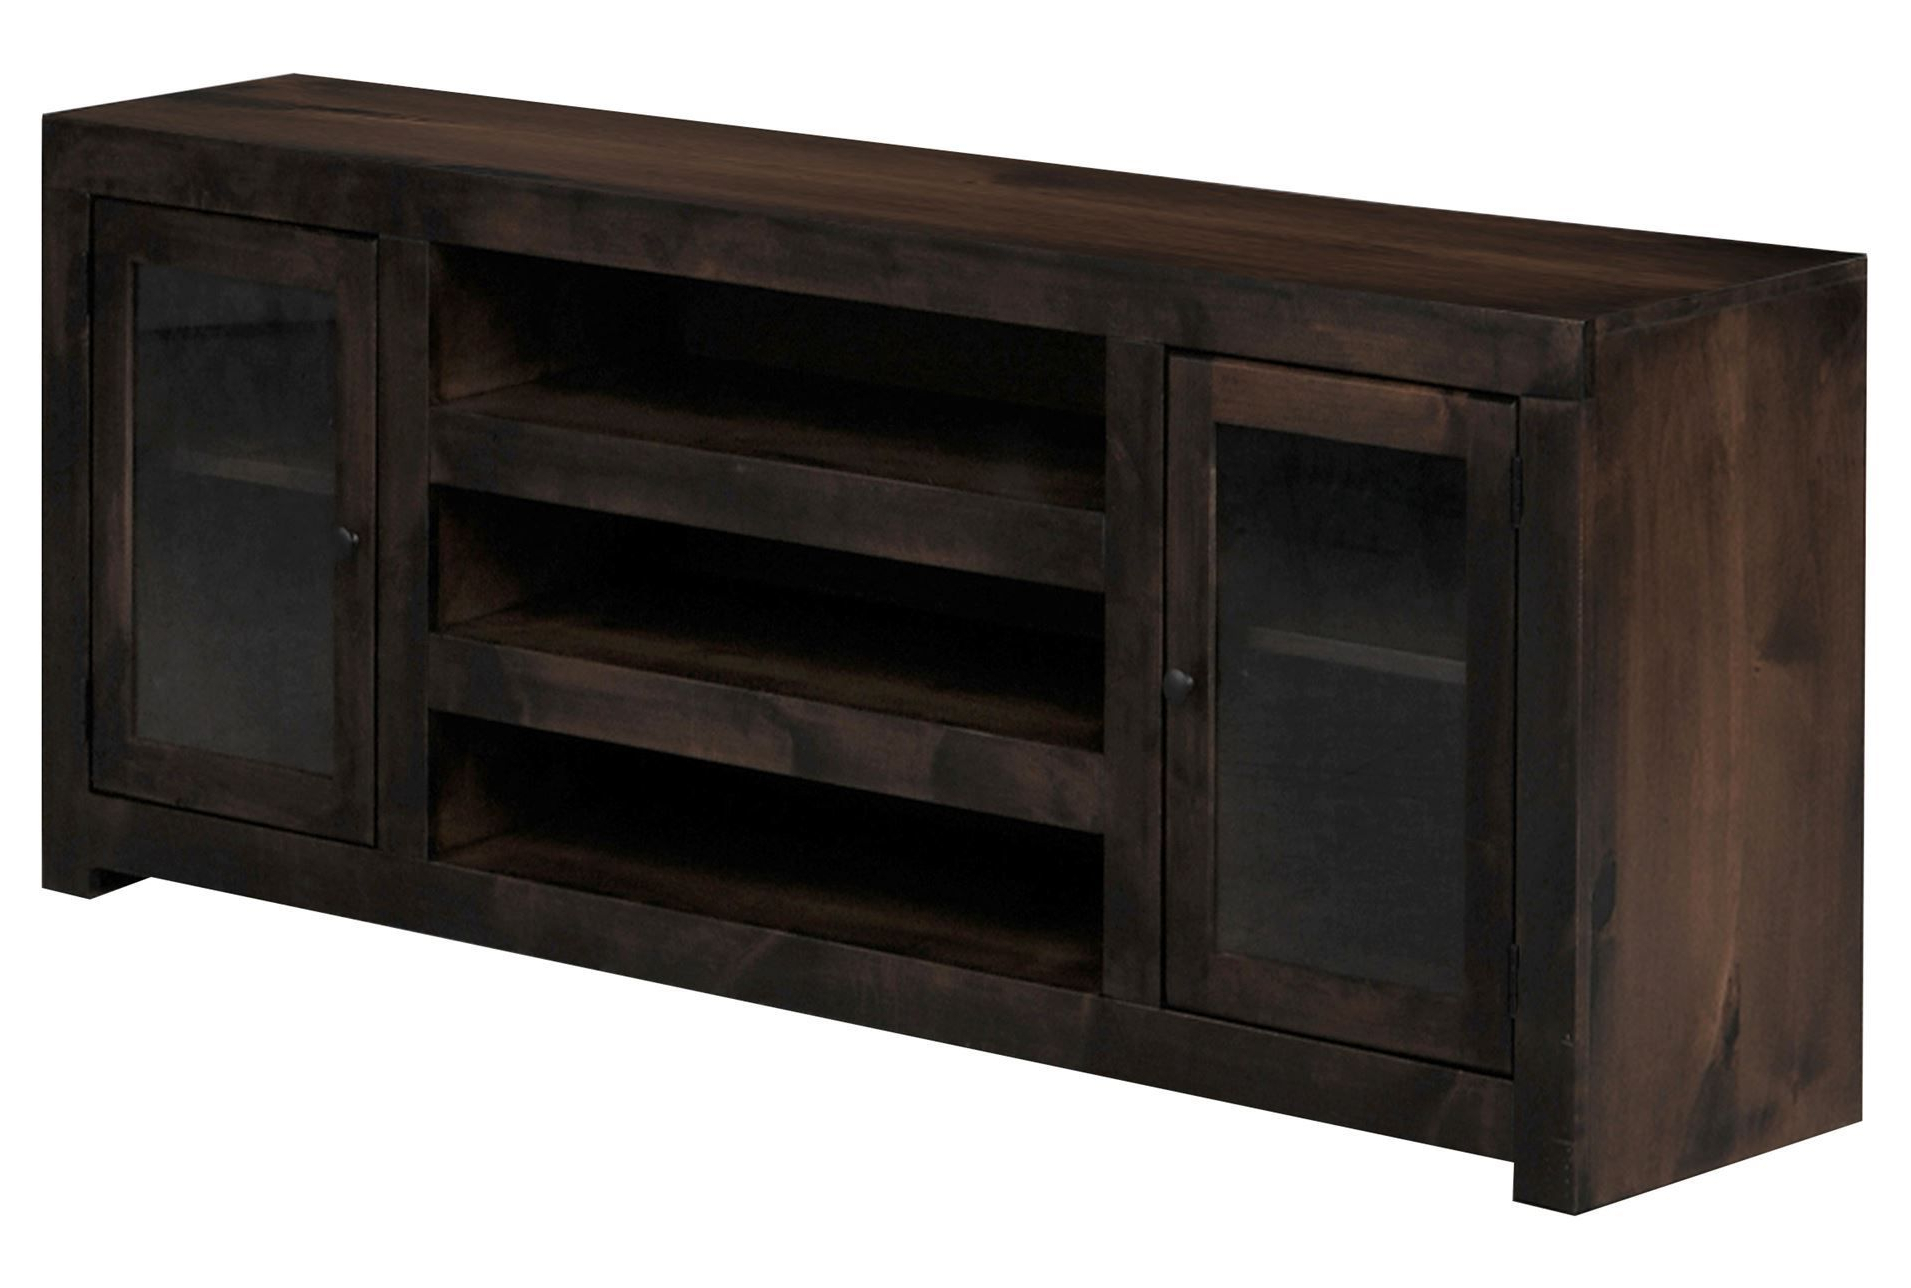 Walton 72 Inch Tv Stand | Man Cave | Pinterest | Tvs, Console And Regarding Walton Grey 72 Inch Tv Stands (View 3 of 20)